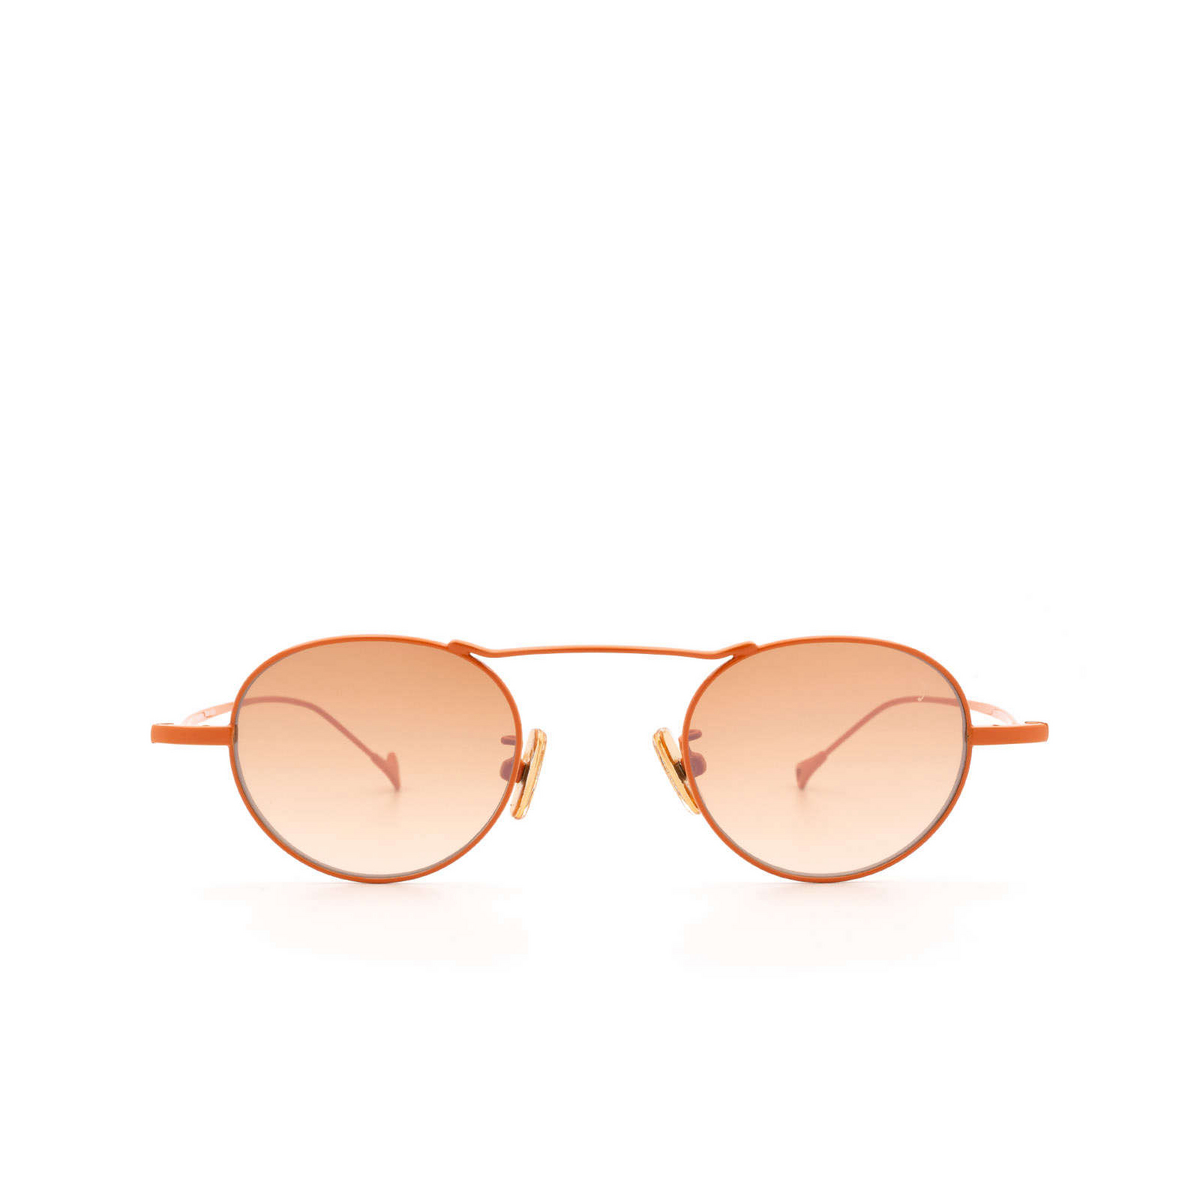 Eyepetizer® Round Sunglasses: Yves color Orange C.13-15F - front view.